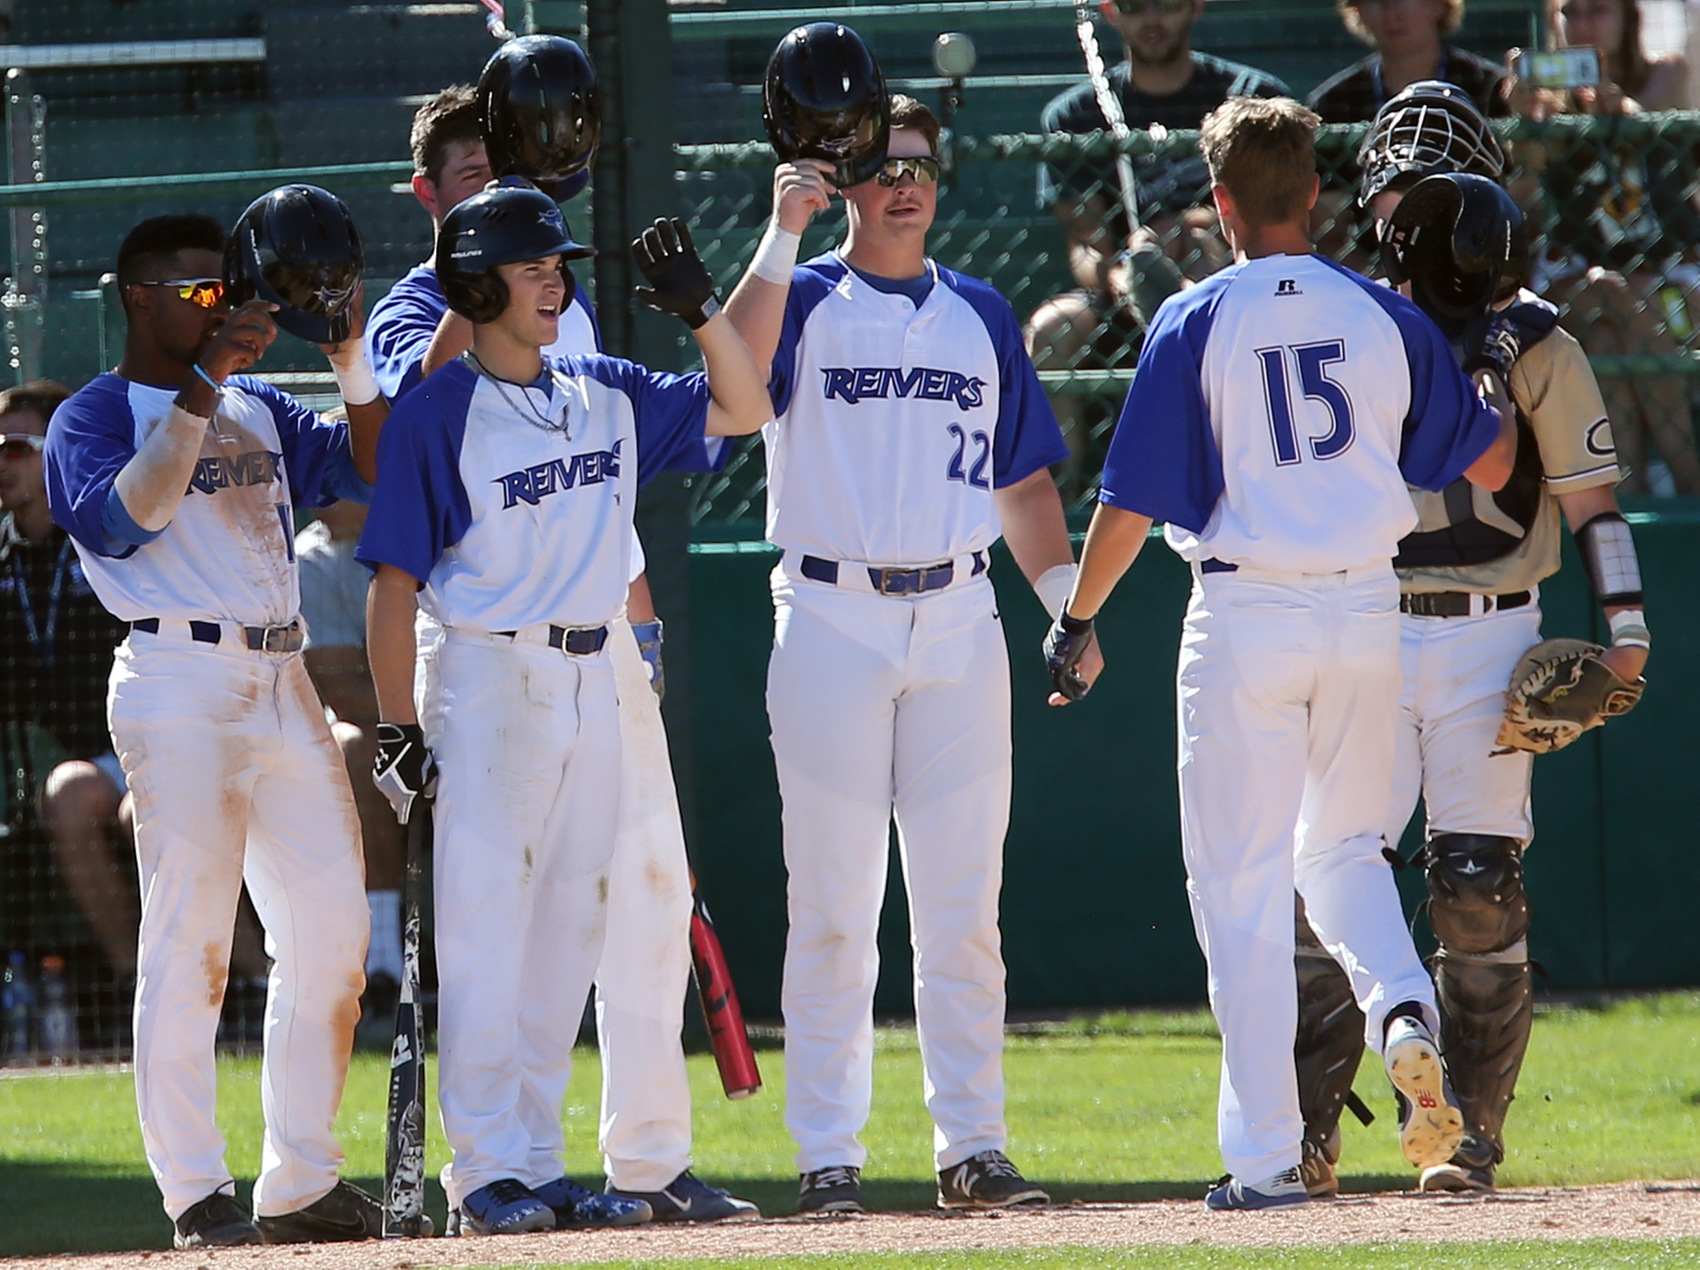 Reivers battle, drop extra inning thriller to defending National Champion Chipola to end season